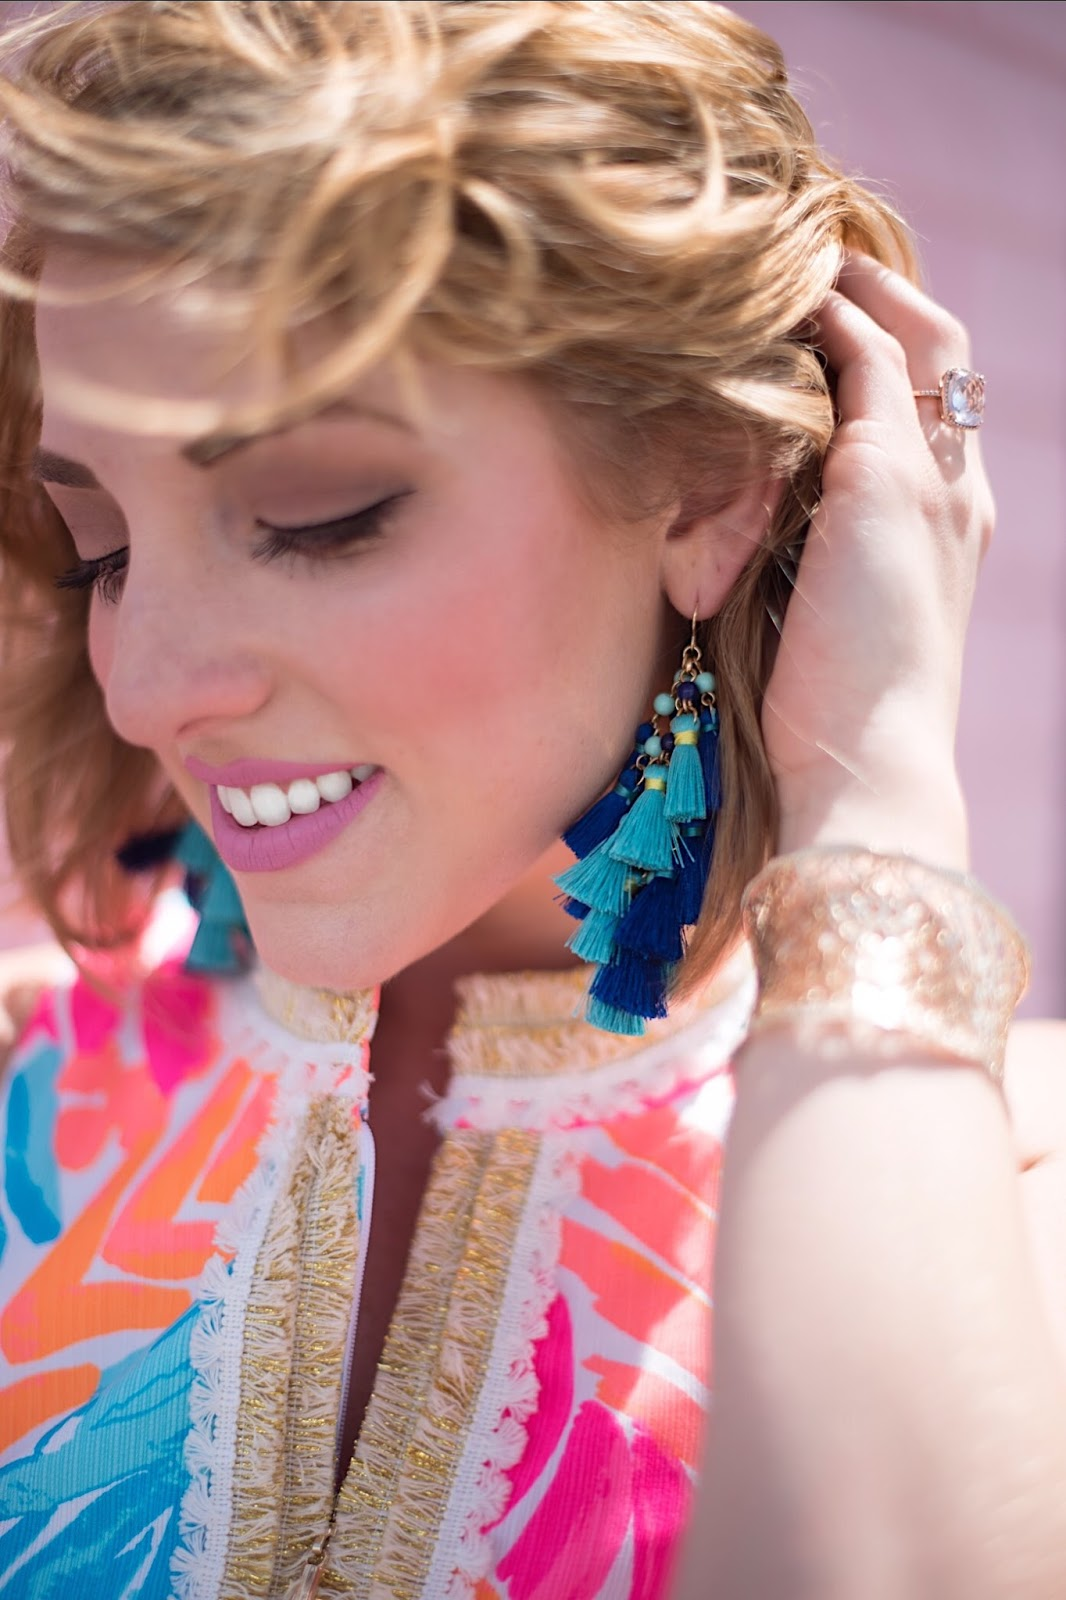 Baublebar Rosalita Tassel Drops - Click through to see more on Something Delightful Blog!